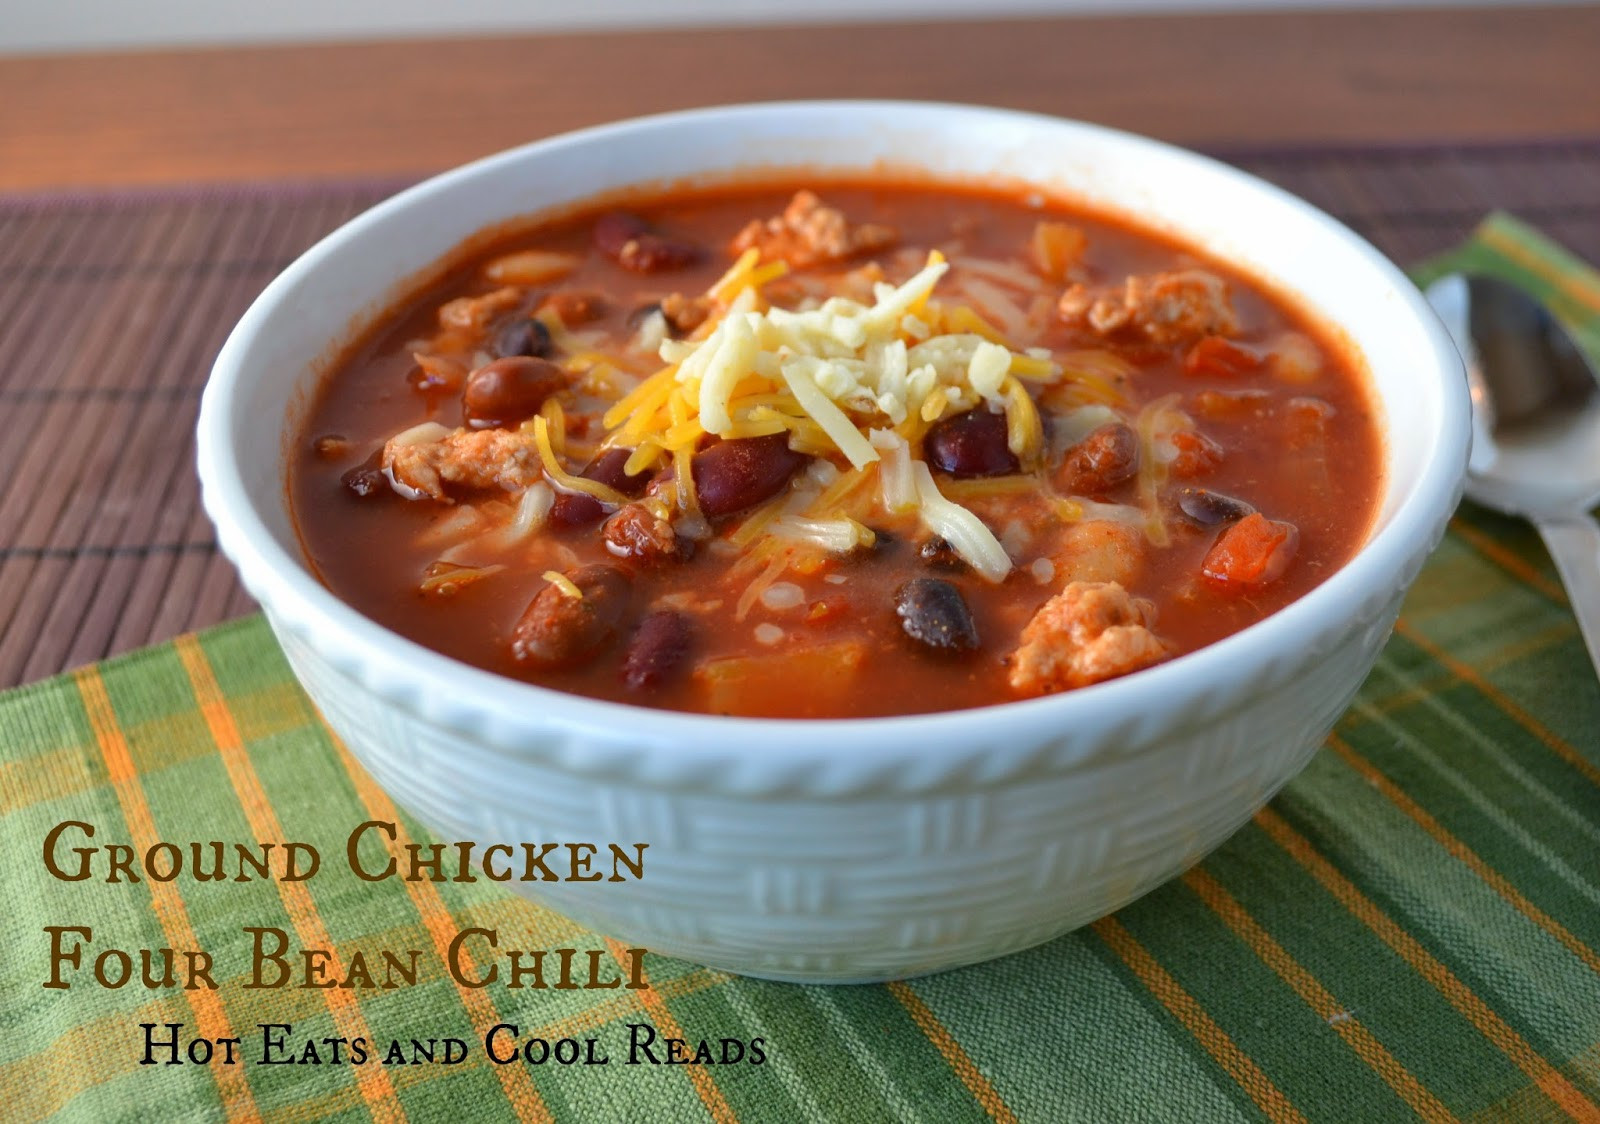 Ground Chicken Chili  Hot Eats and Cool Reads Ground Chicken Four Bean Chili Recipe